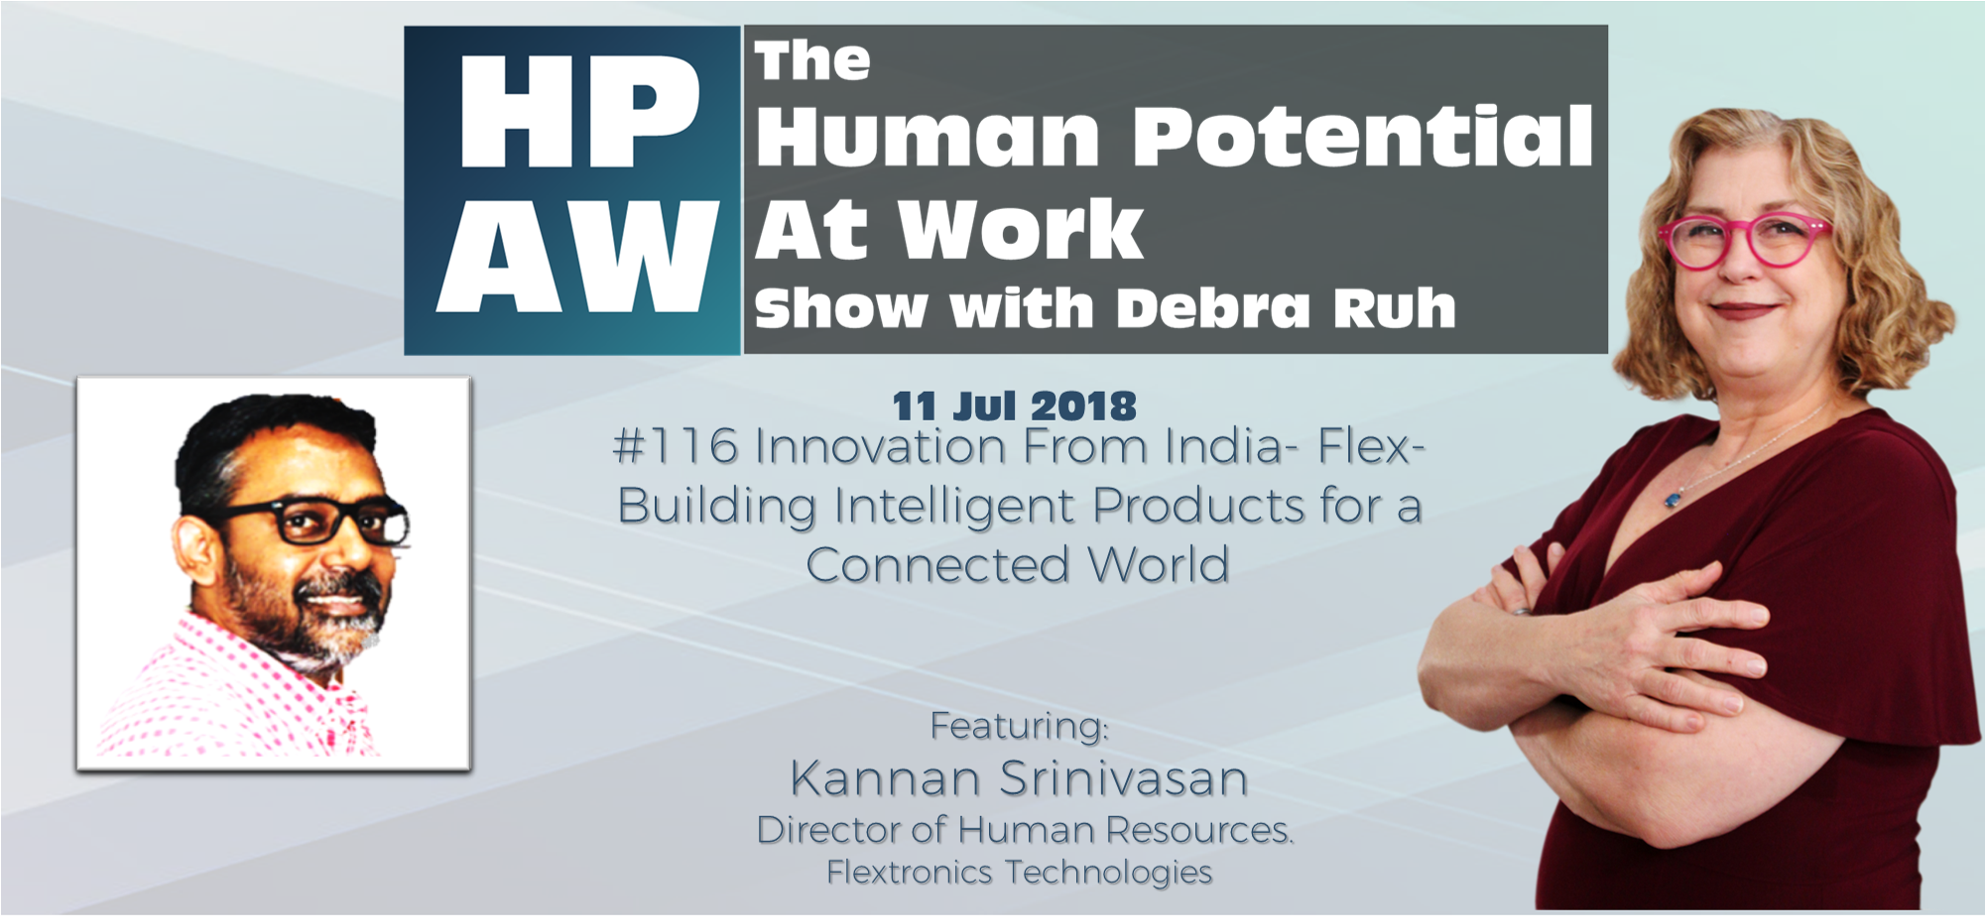 Episode Flyer for #116 Innovation From India- Flex- Building Intelligent Products for a Connected World